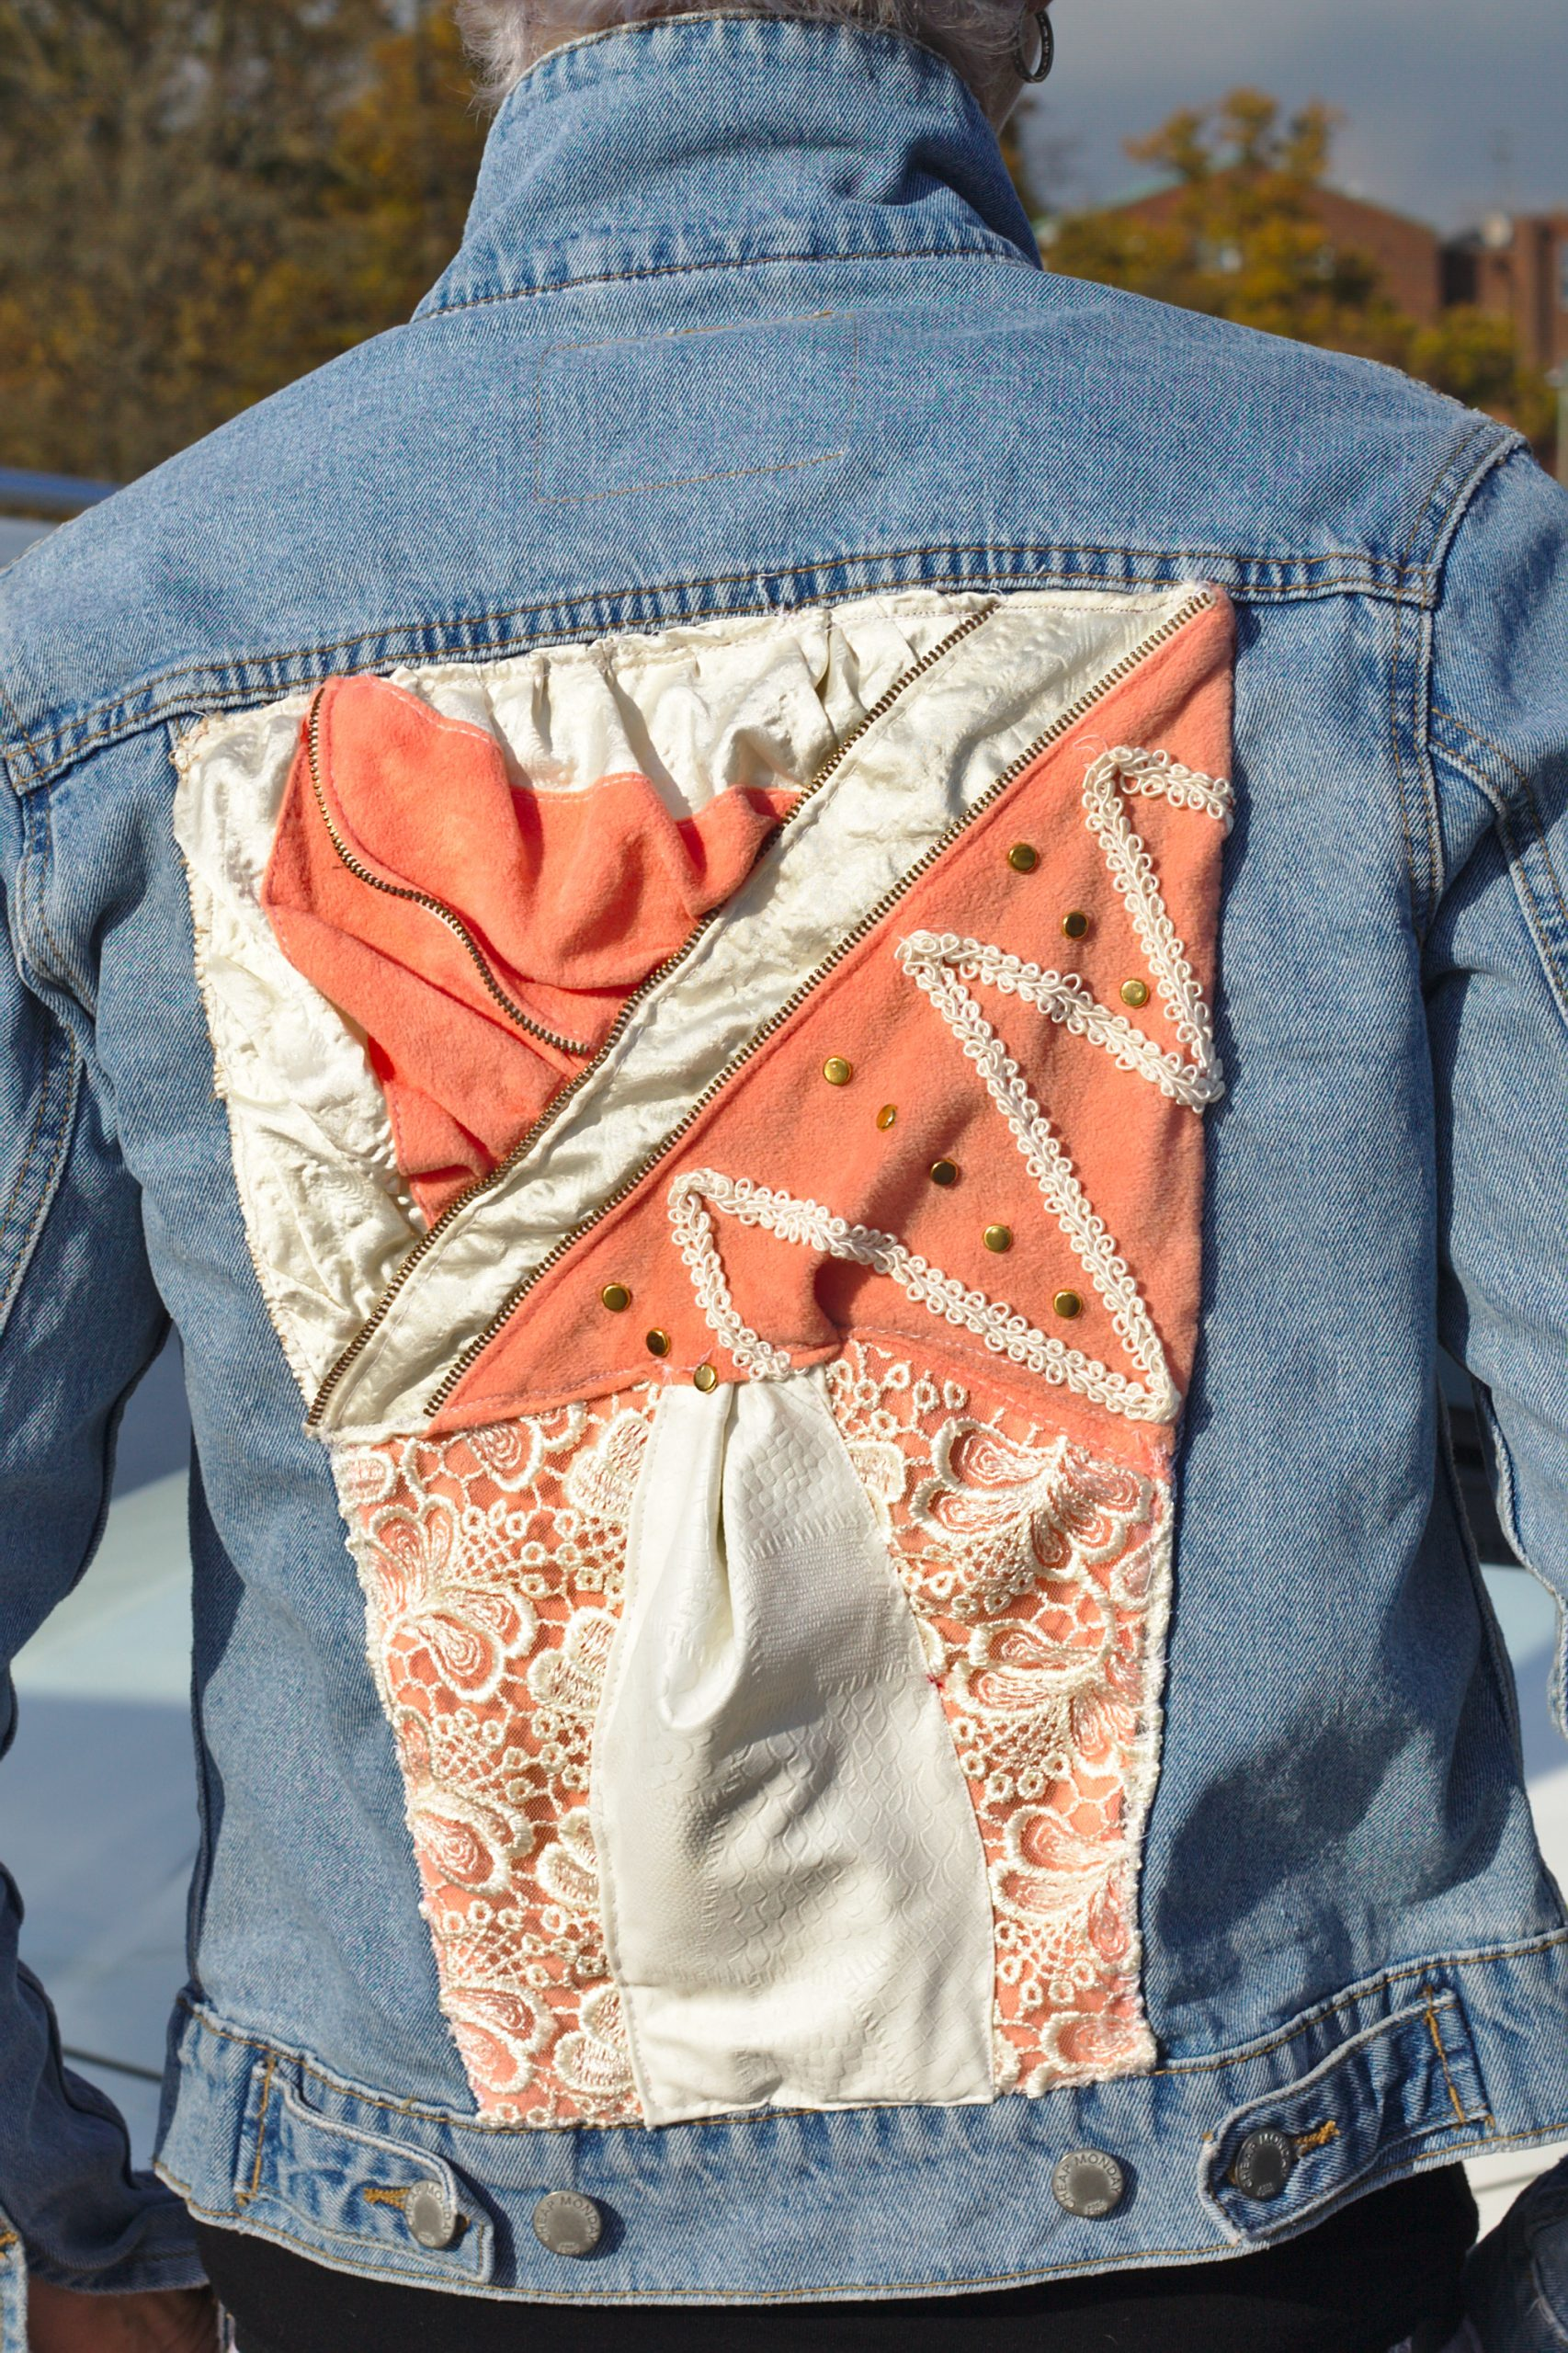 repurposing denim jacket